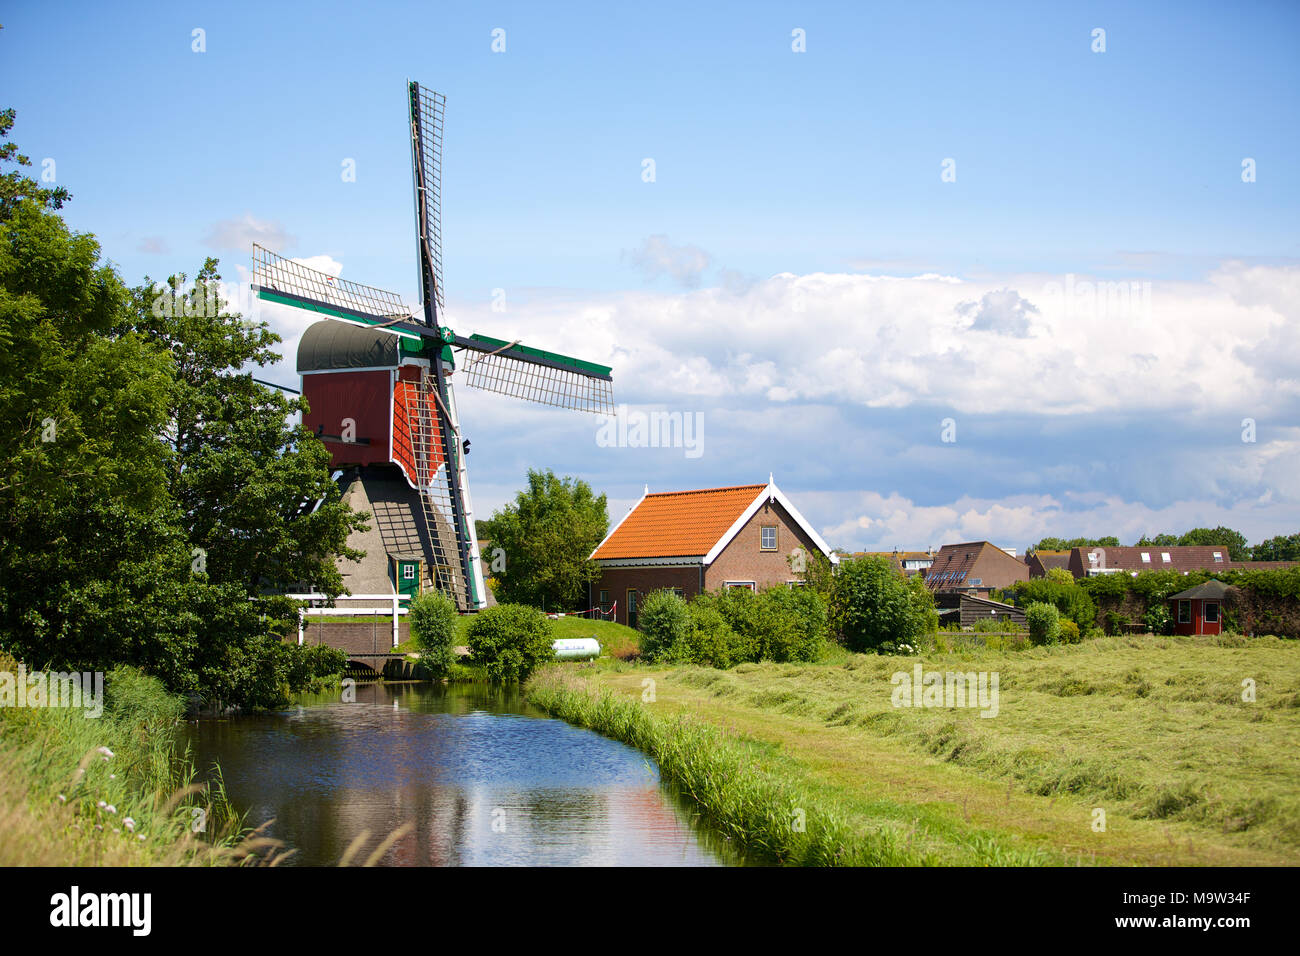 A historical water windmill on a little river and freshly mown grassland in Oud Ade in the Netherlands. - Stock Image